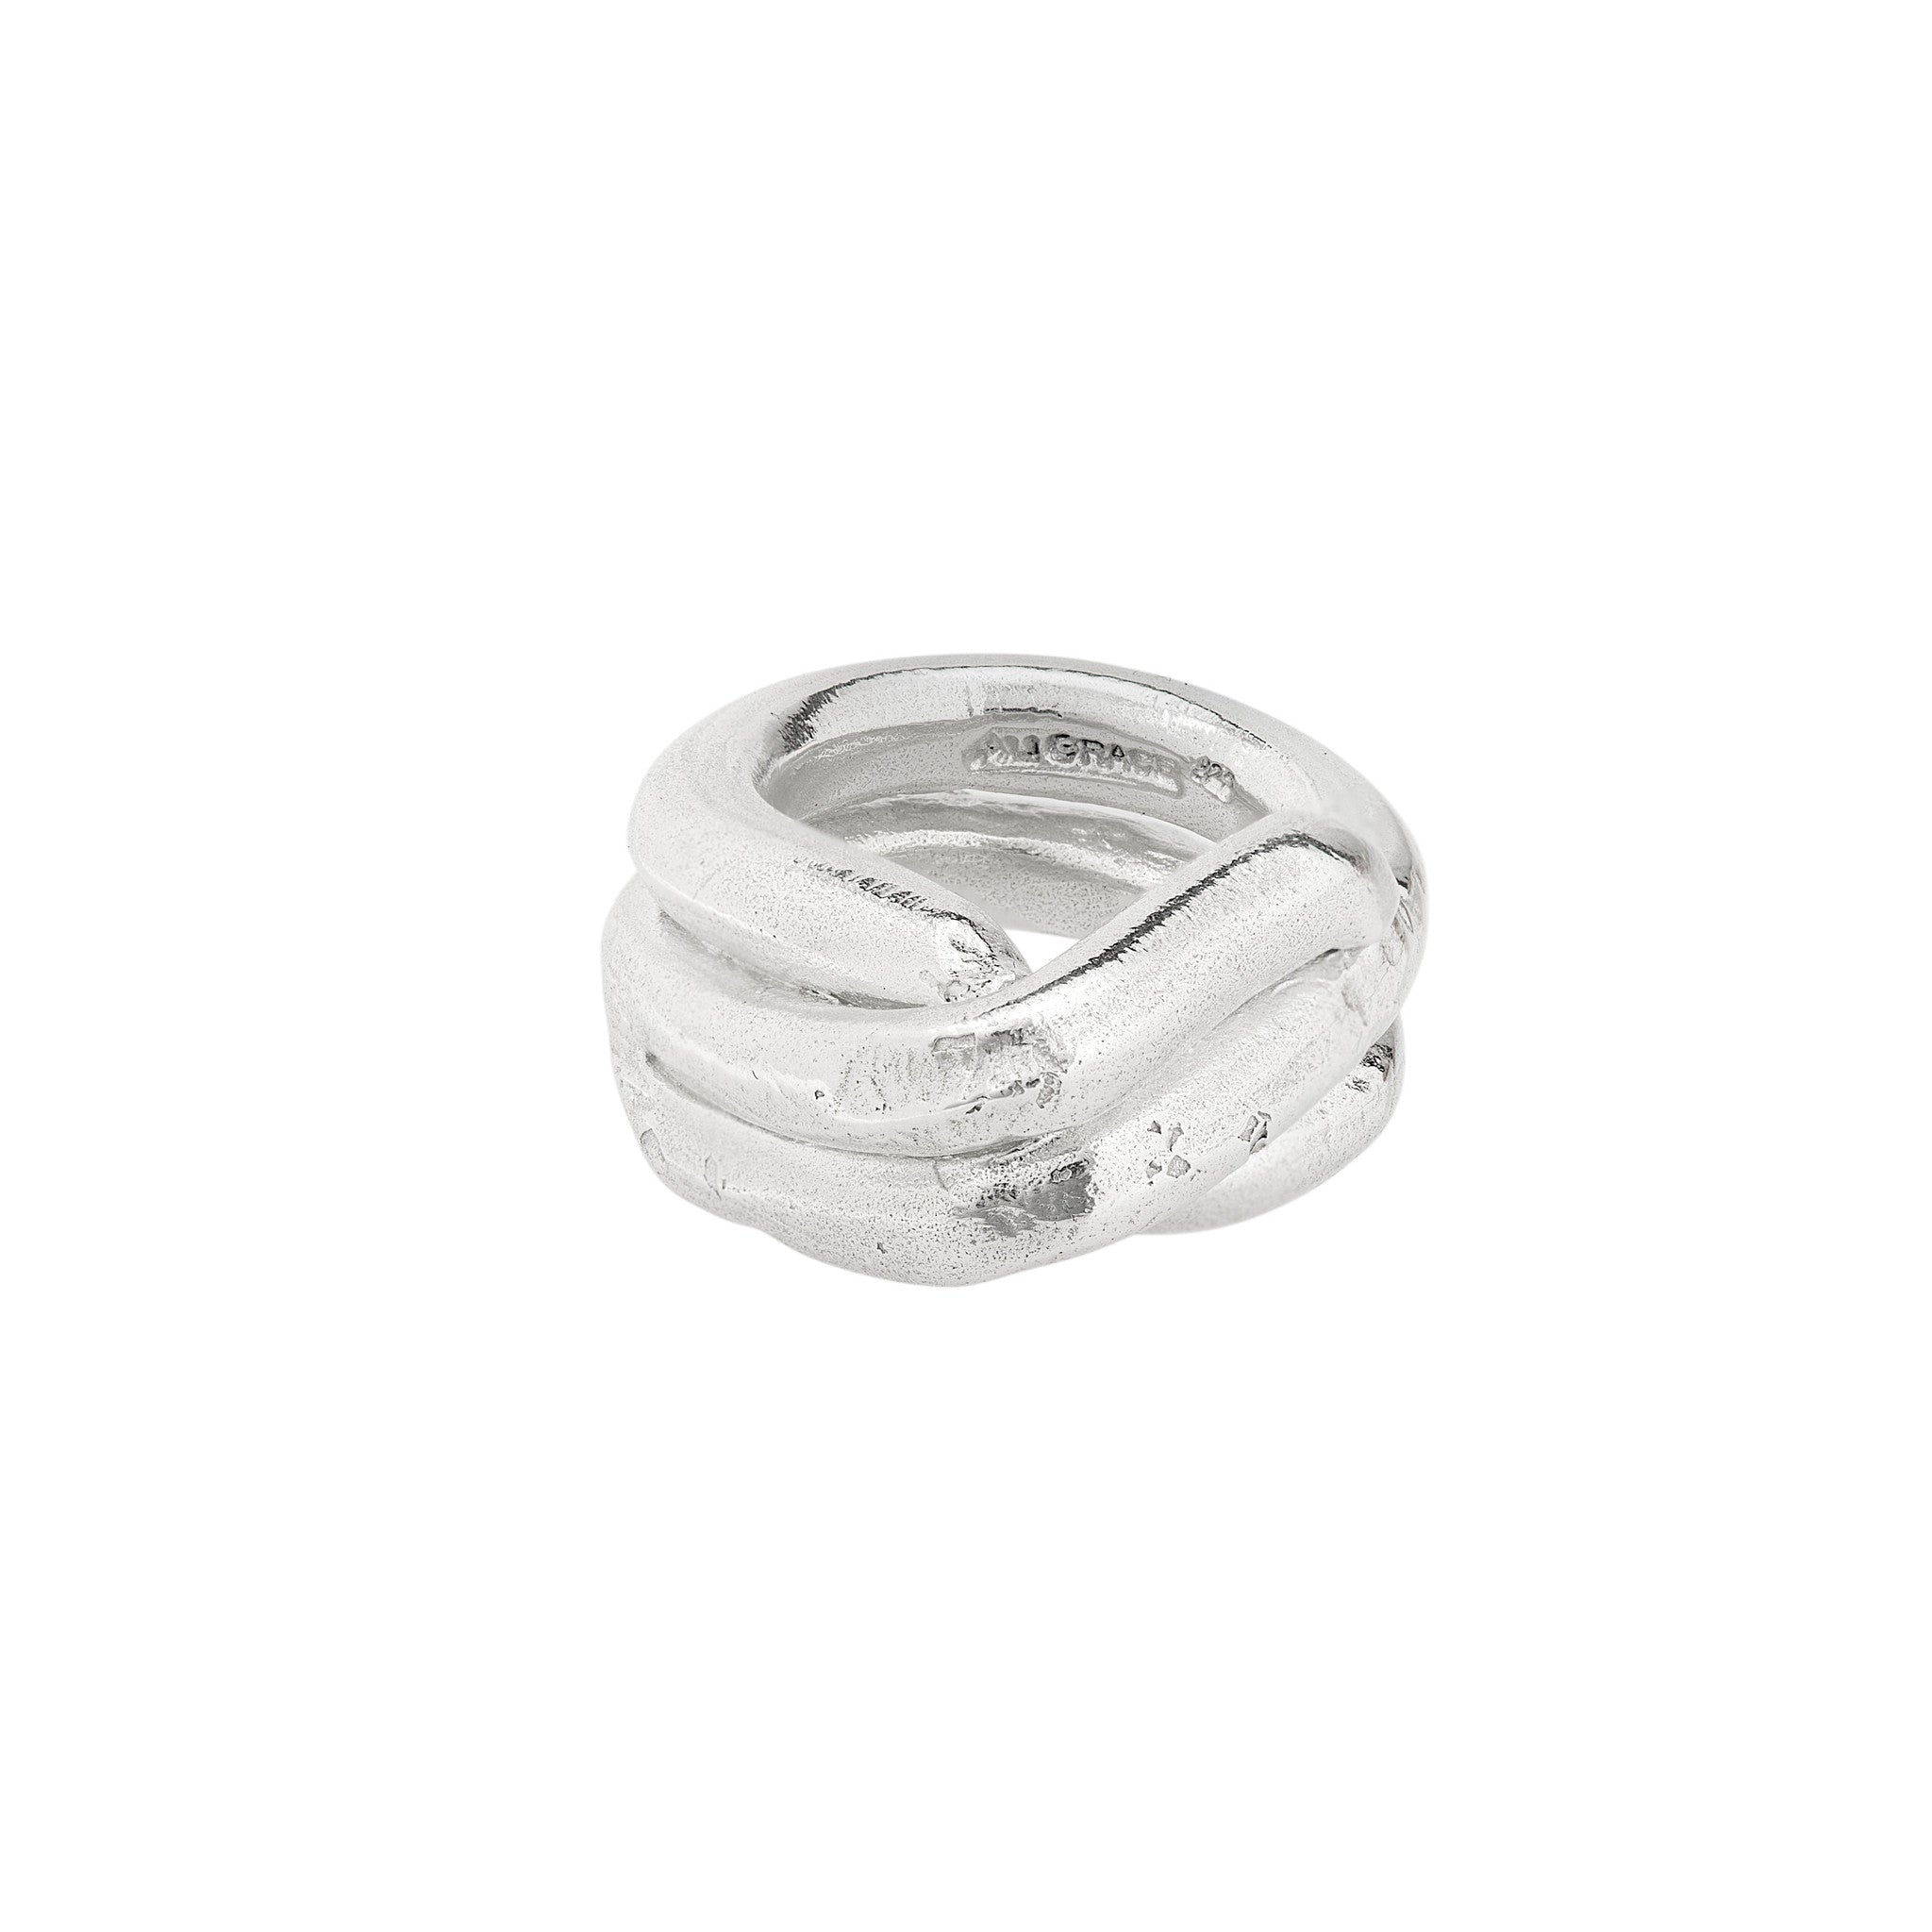 Triple wide sterling silver ring